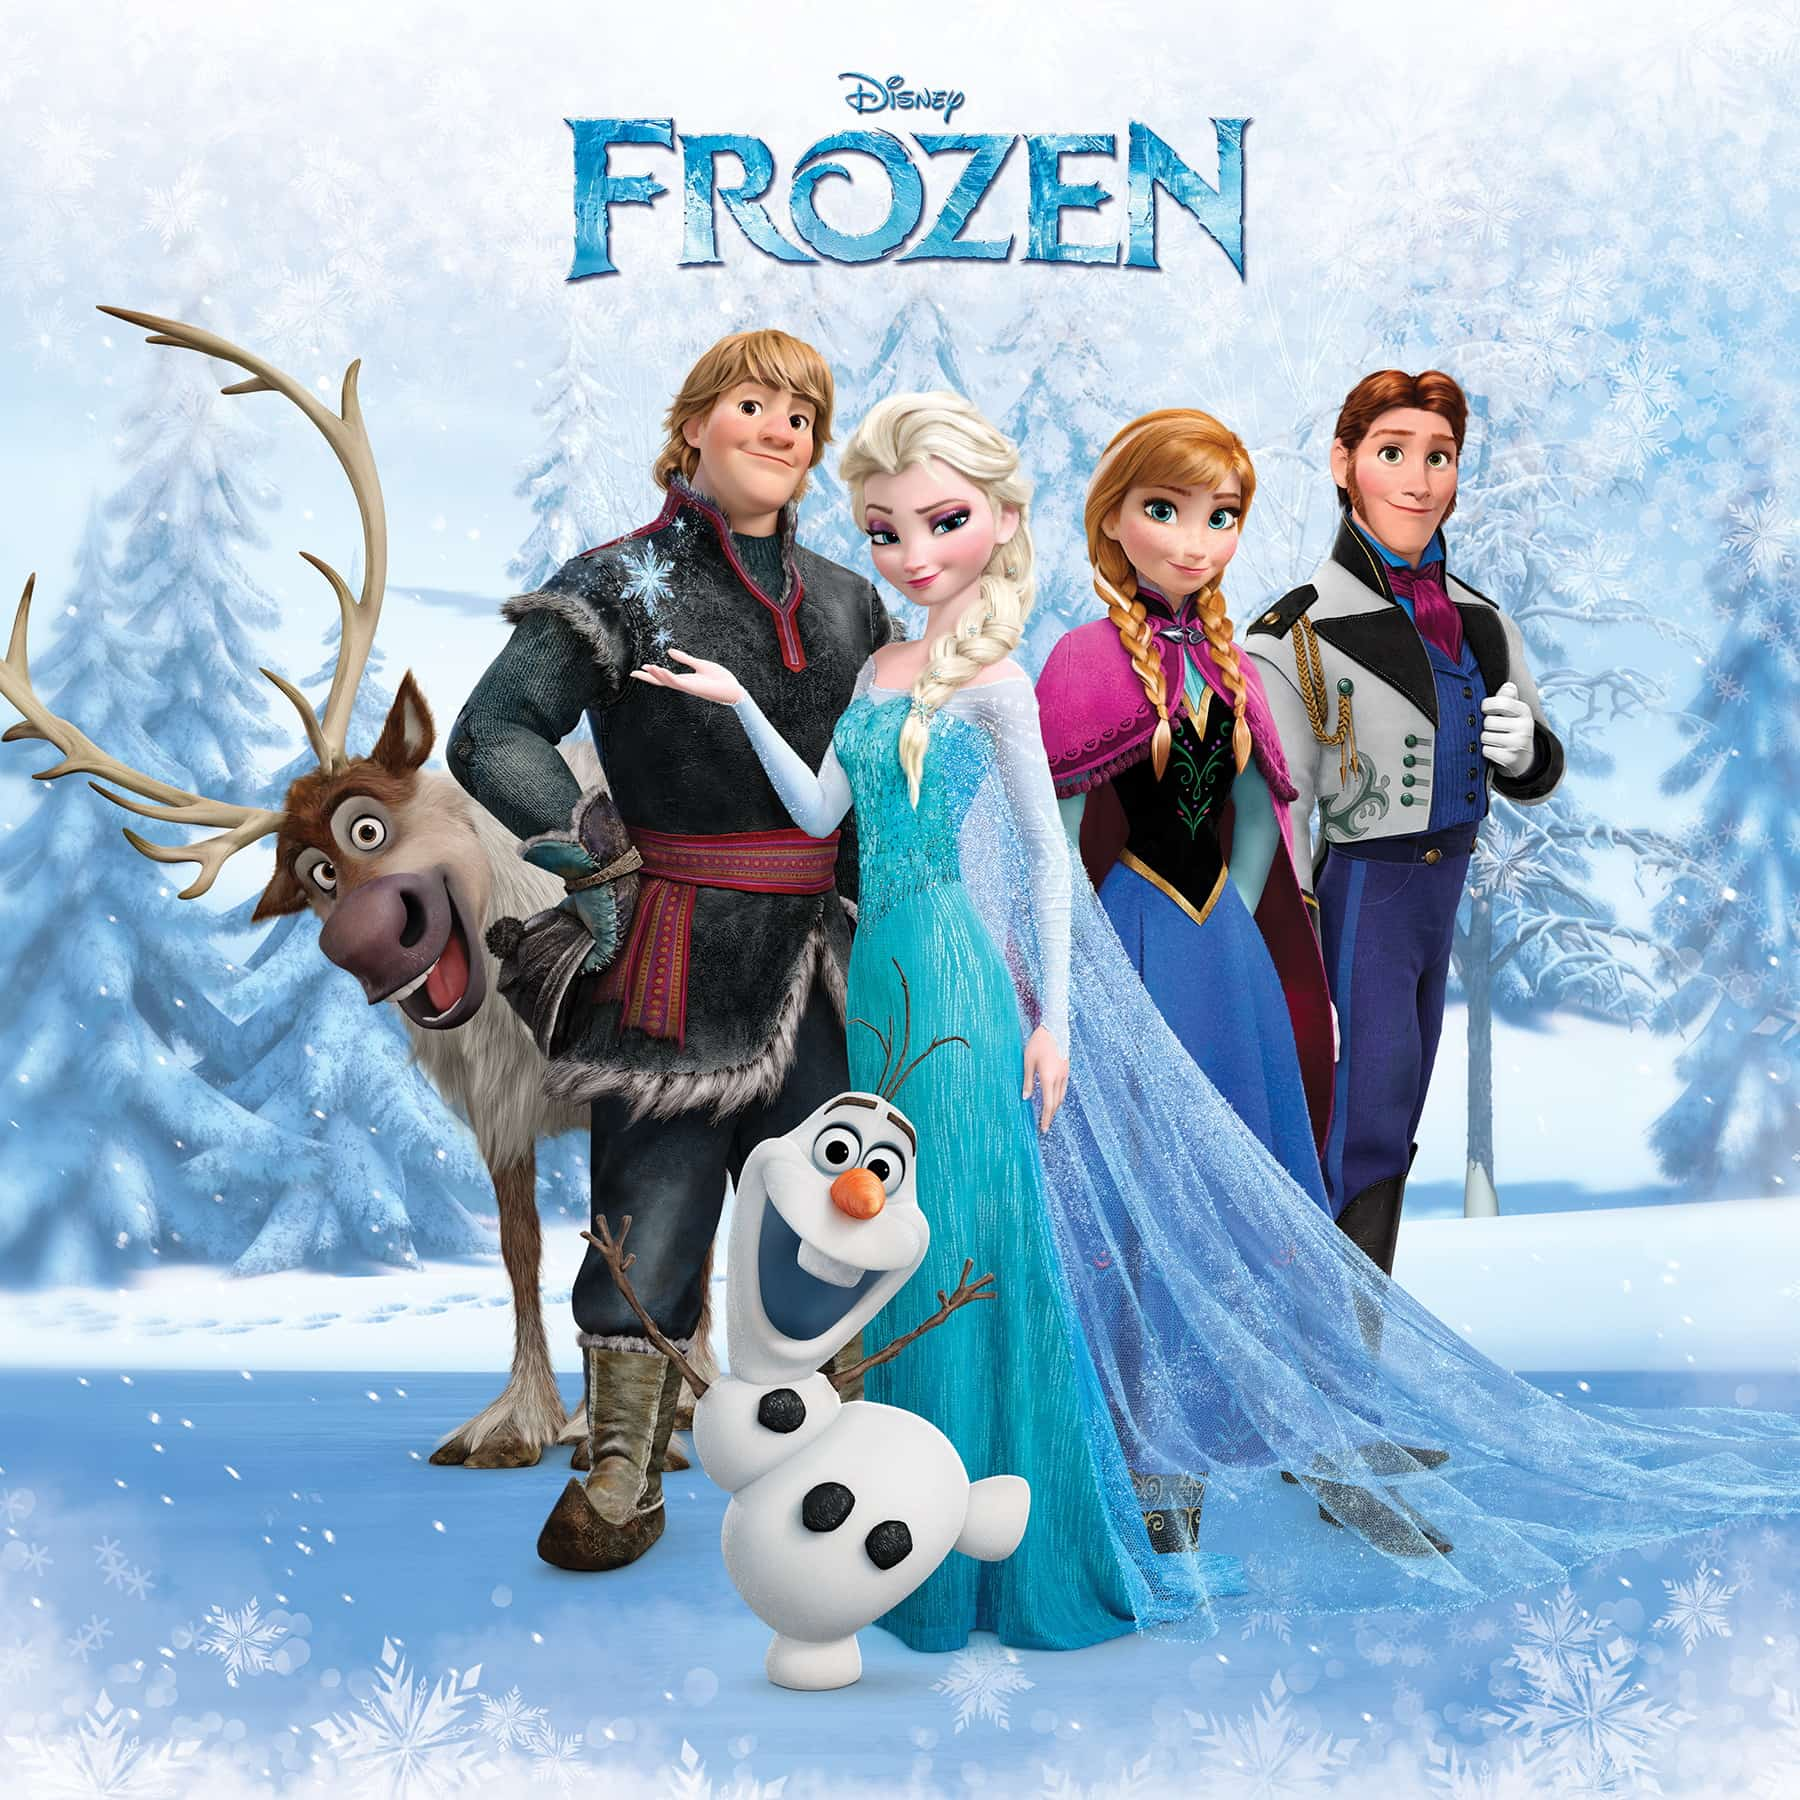 Disneys hollywood studios announces frozen summer fun live disneys hollywood studios announces frozen summer fun live world traveled family voltagebd Images